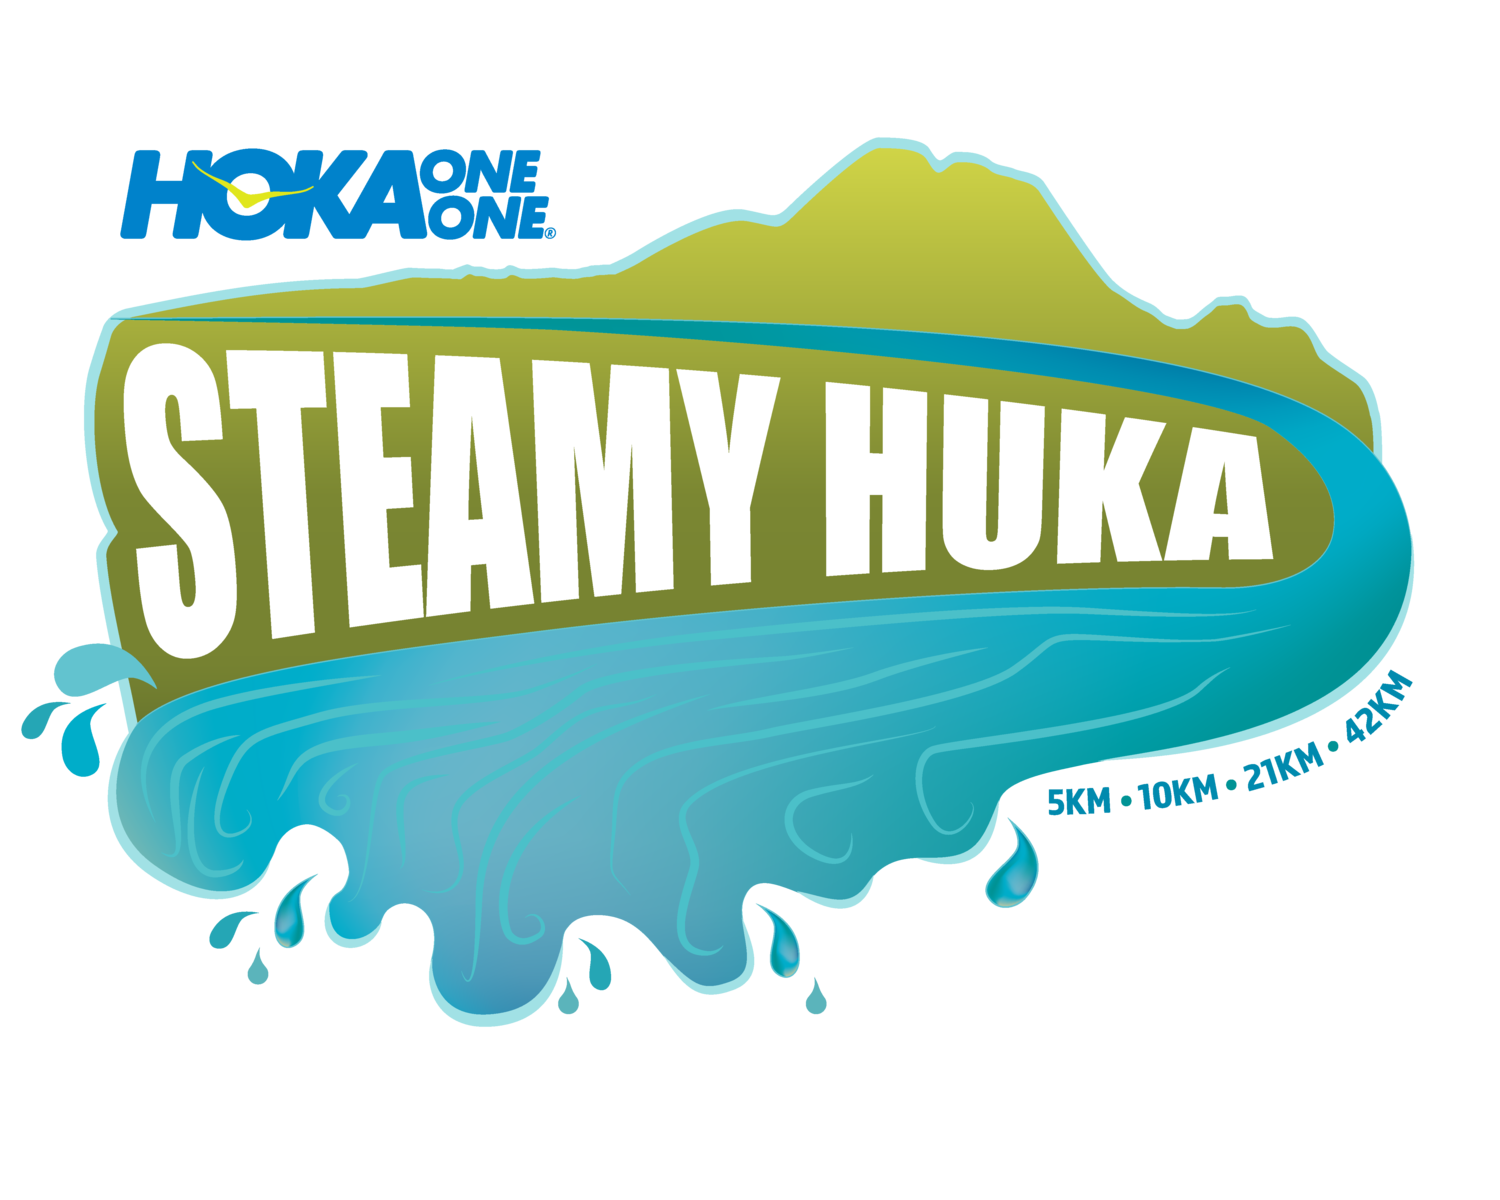 The Hoka One One Steamy Huka